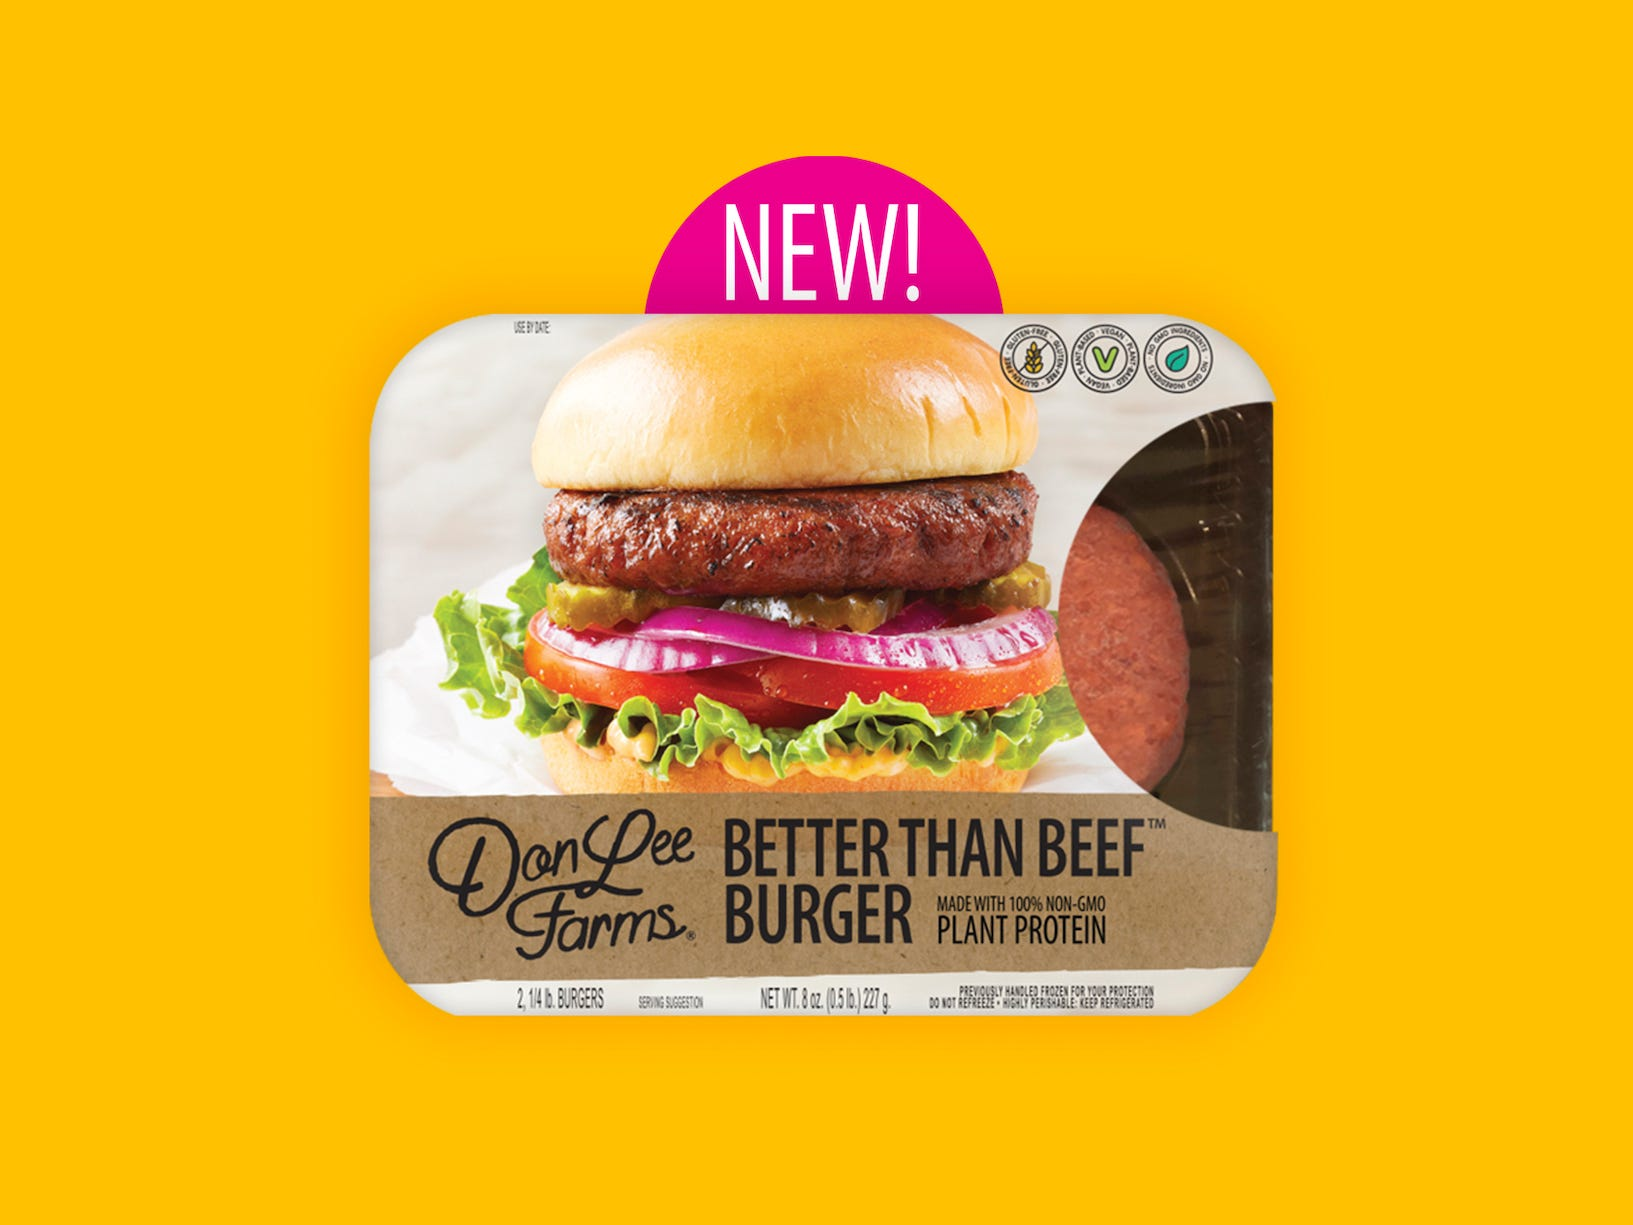 costco selling plant-based burger